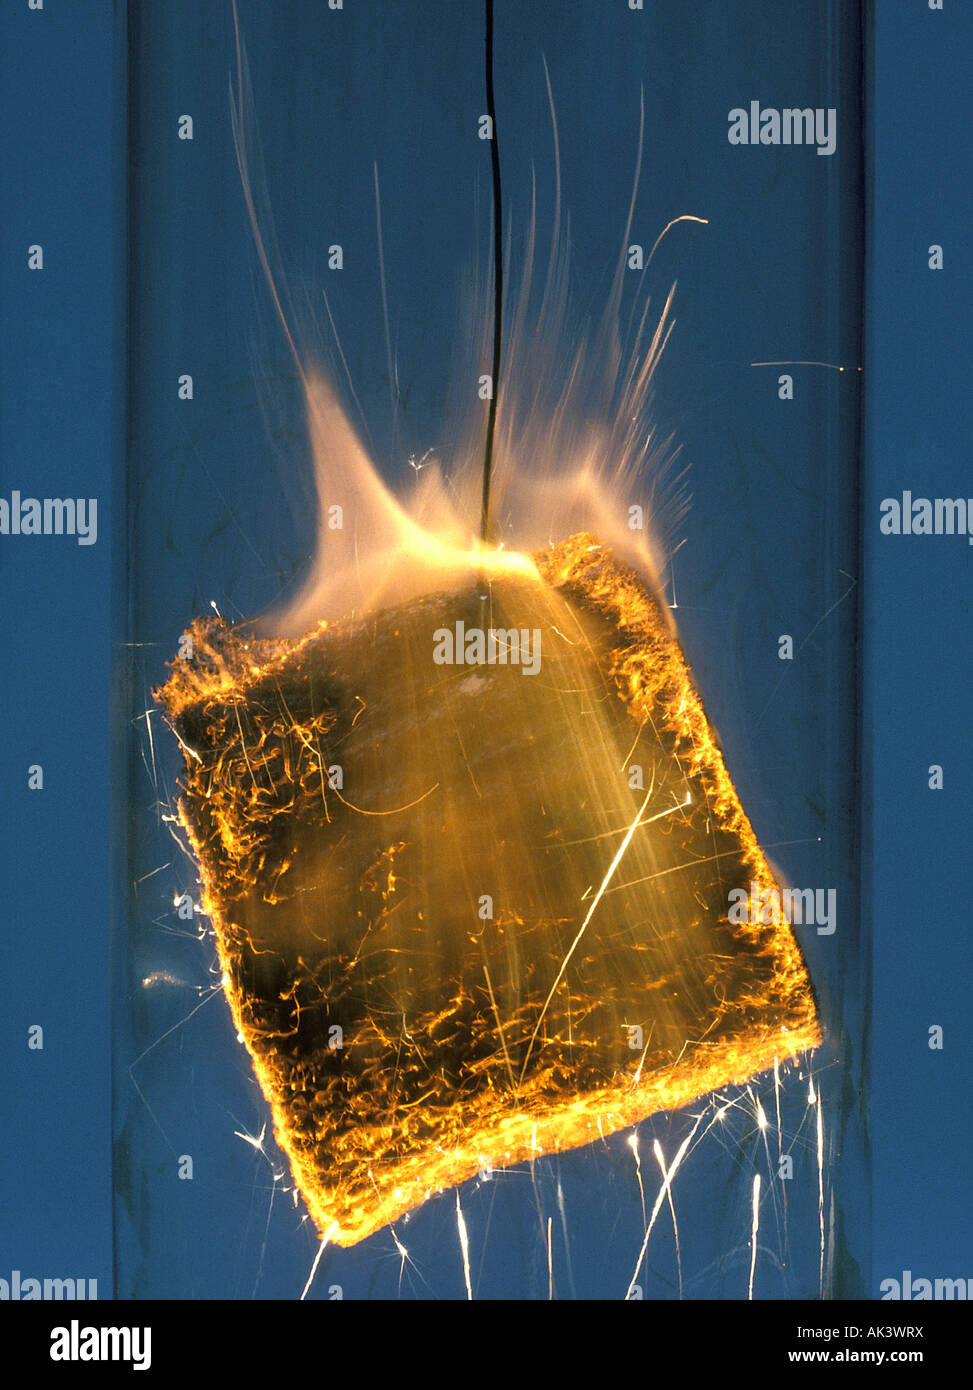 Burning Steel wool in Oxygen Environment Stock Photo